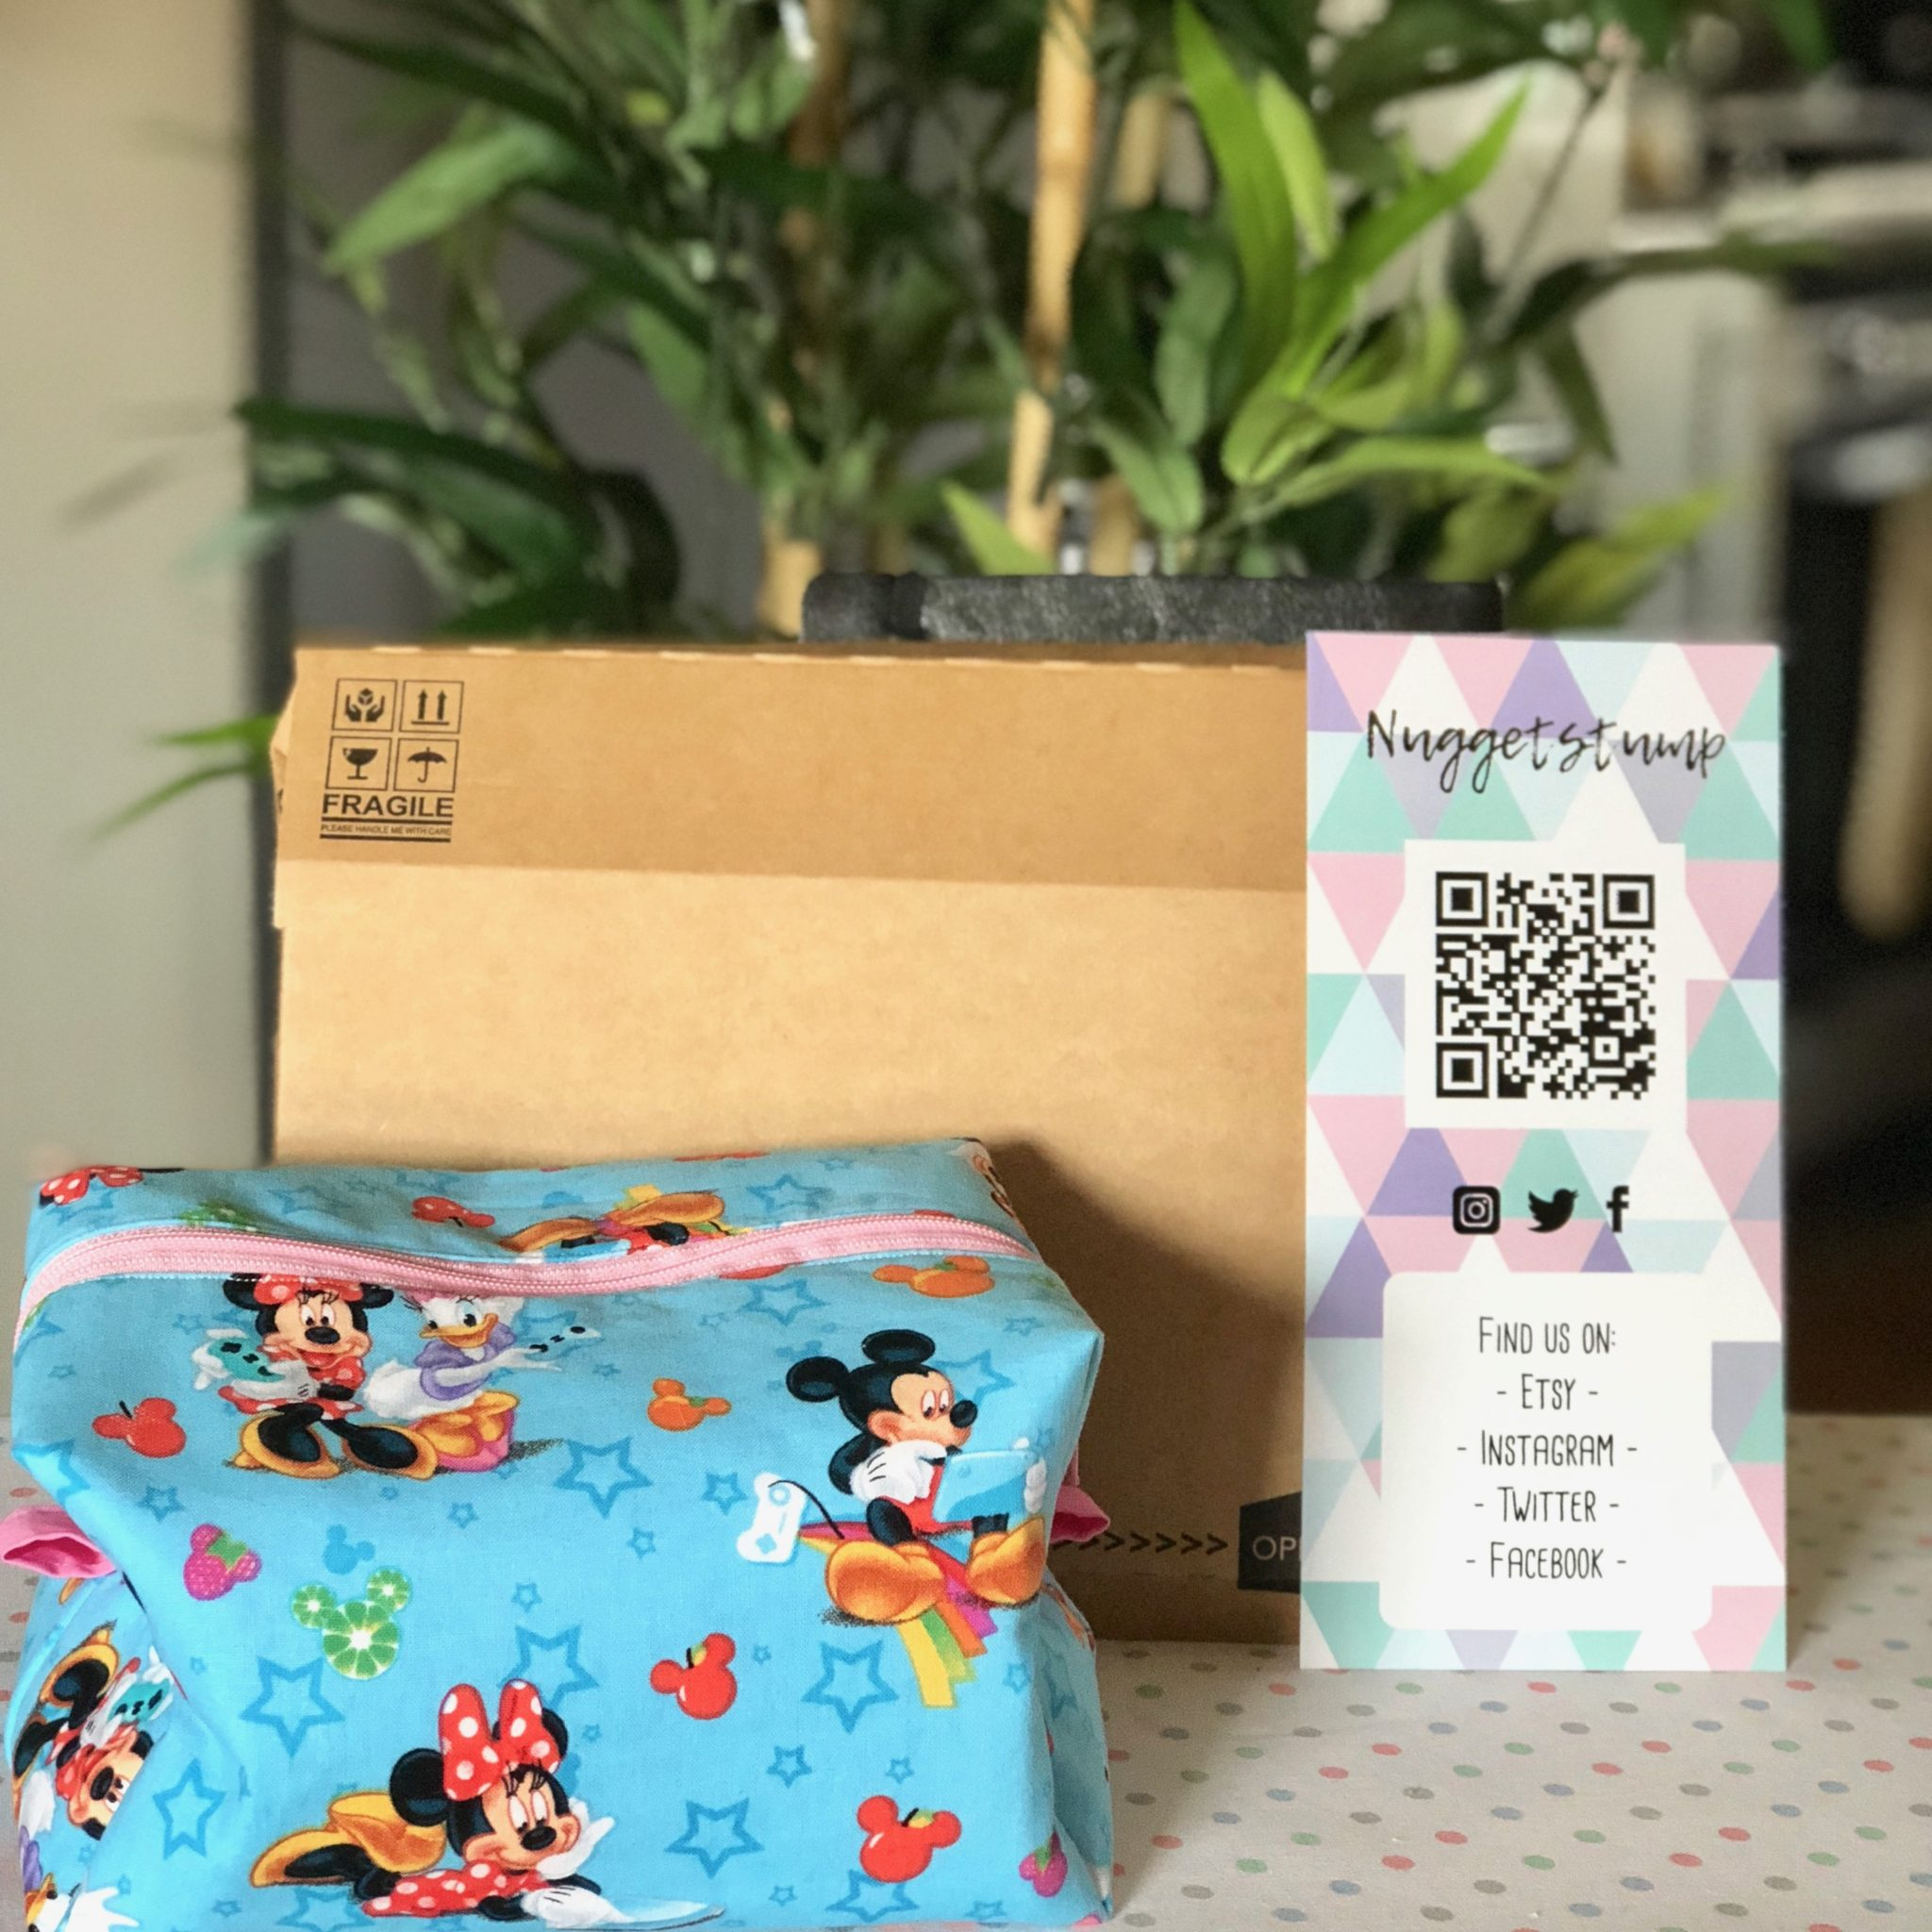 Lil Packaging Review - an image of a handmade bag, next to a cardboard mailer